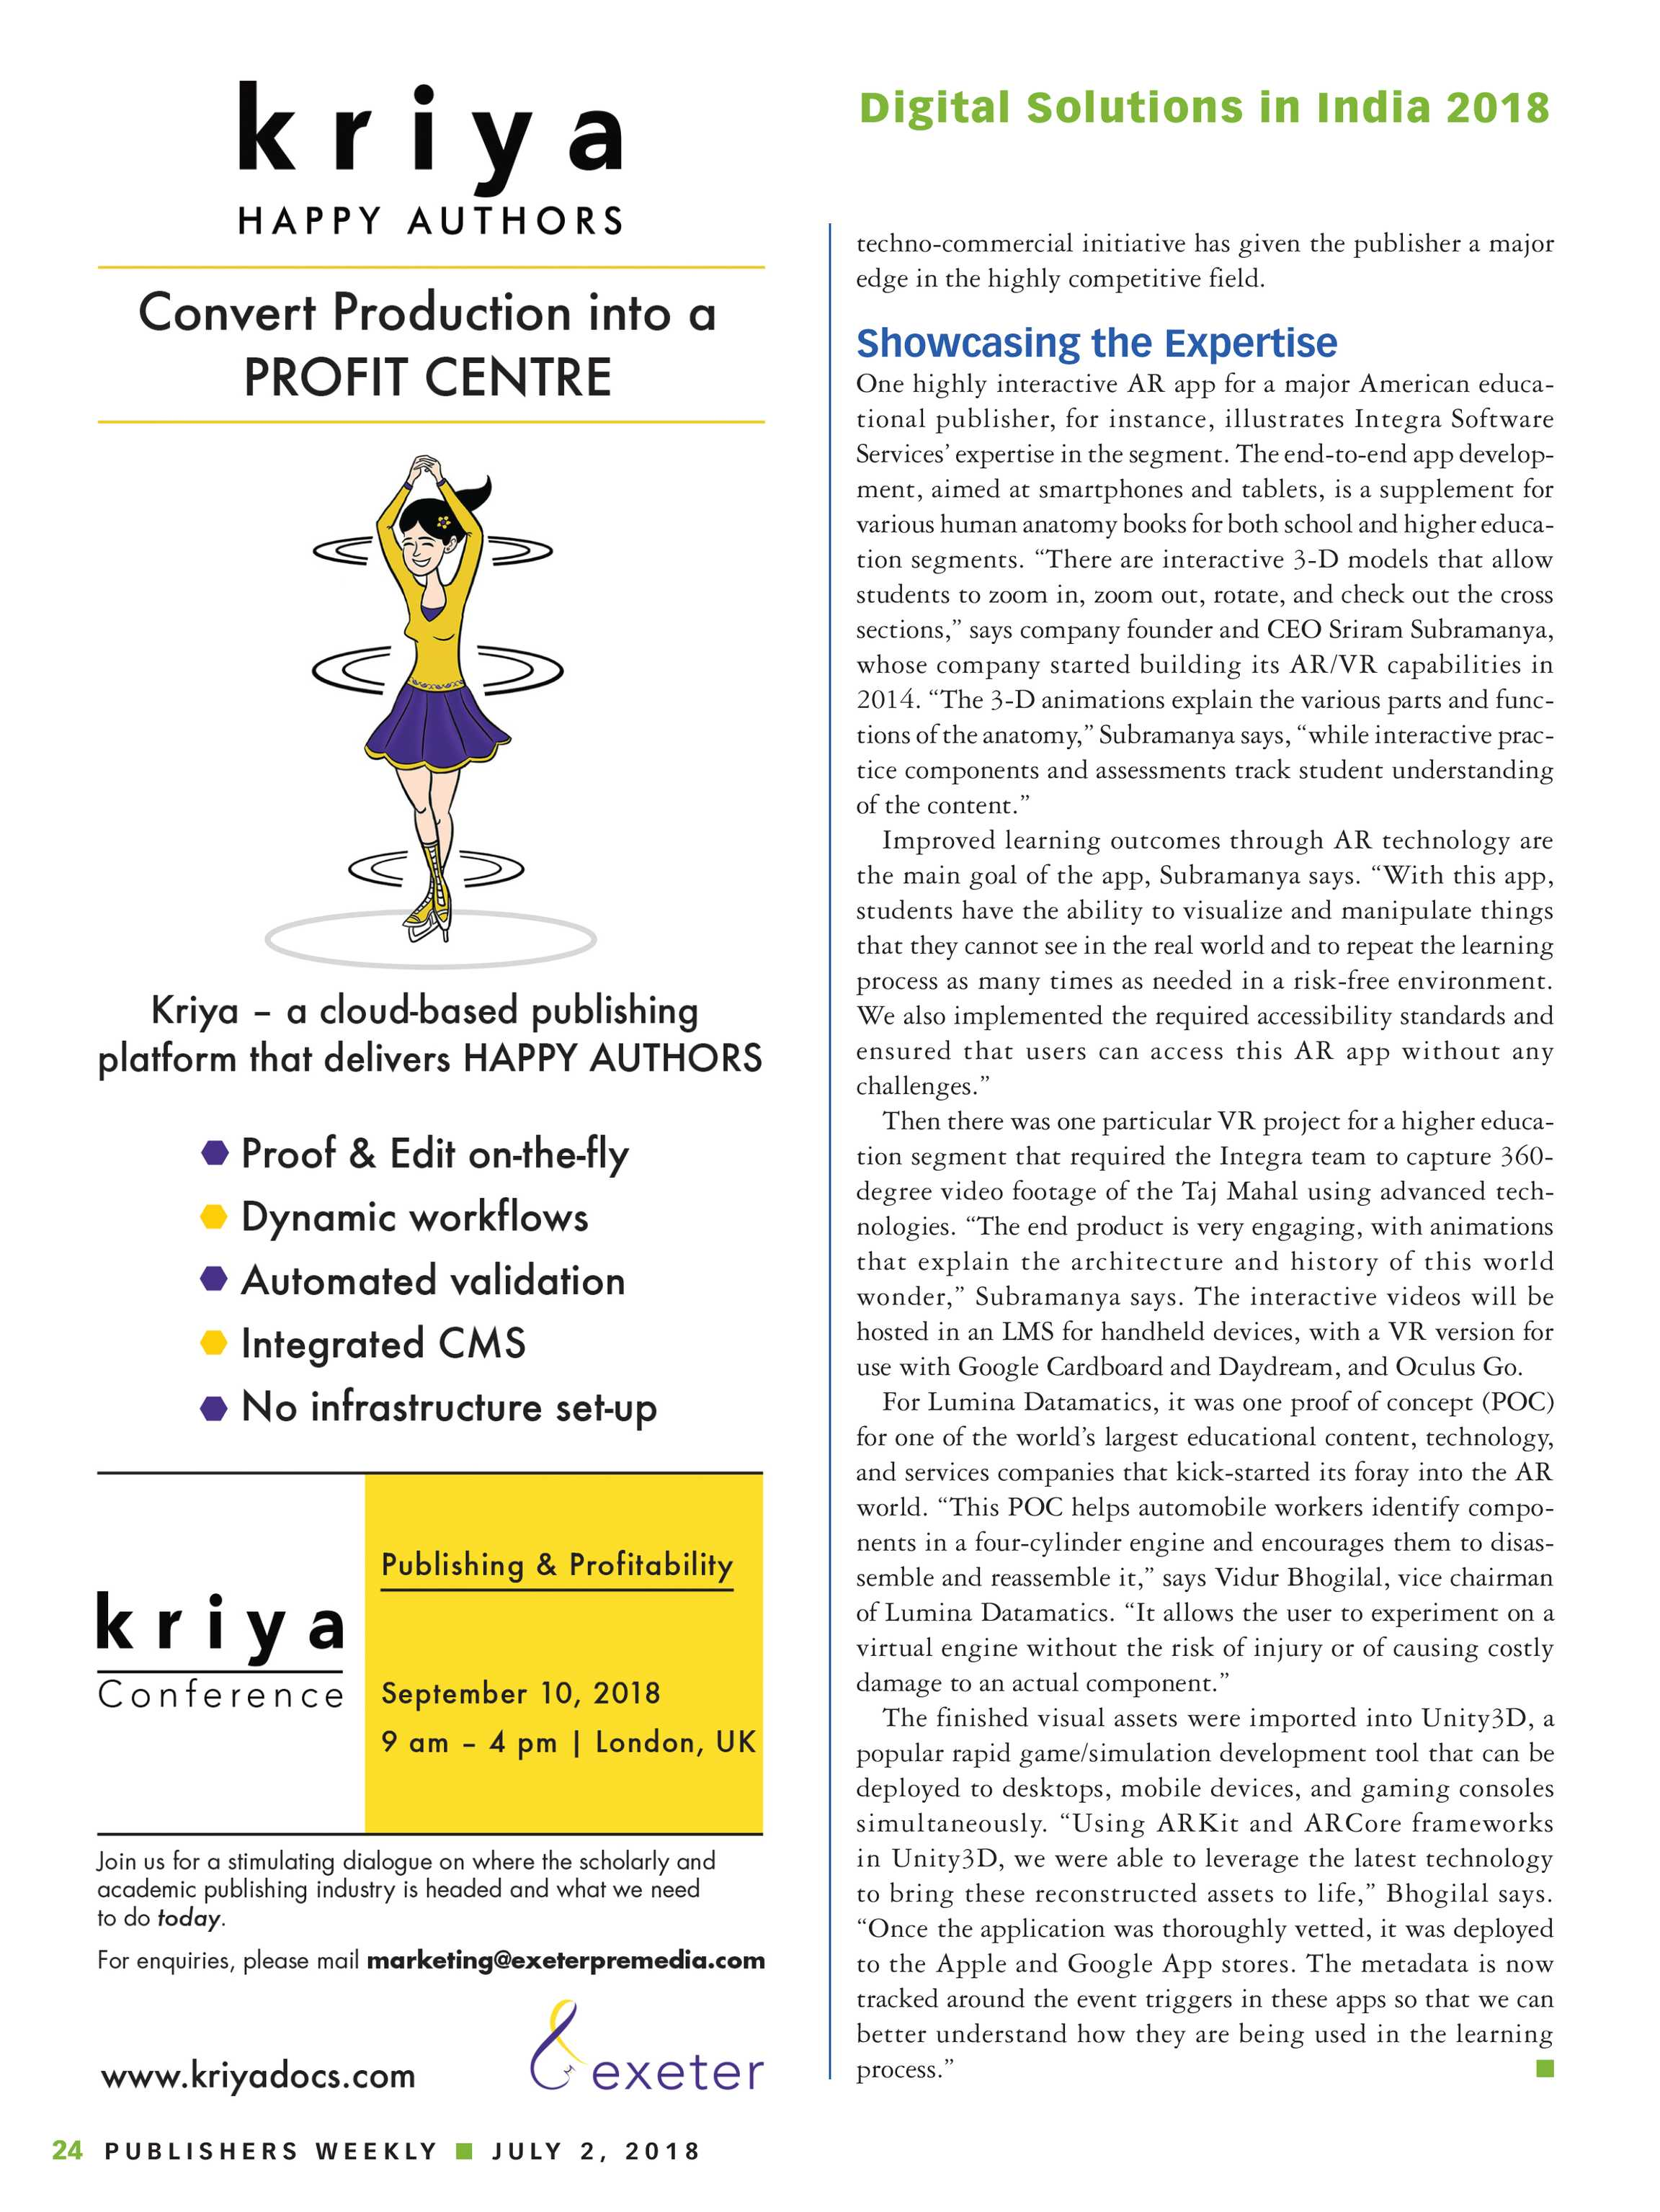 Publishers Weekly - India Supplement 2018 - page 24